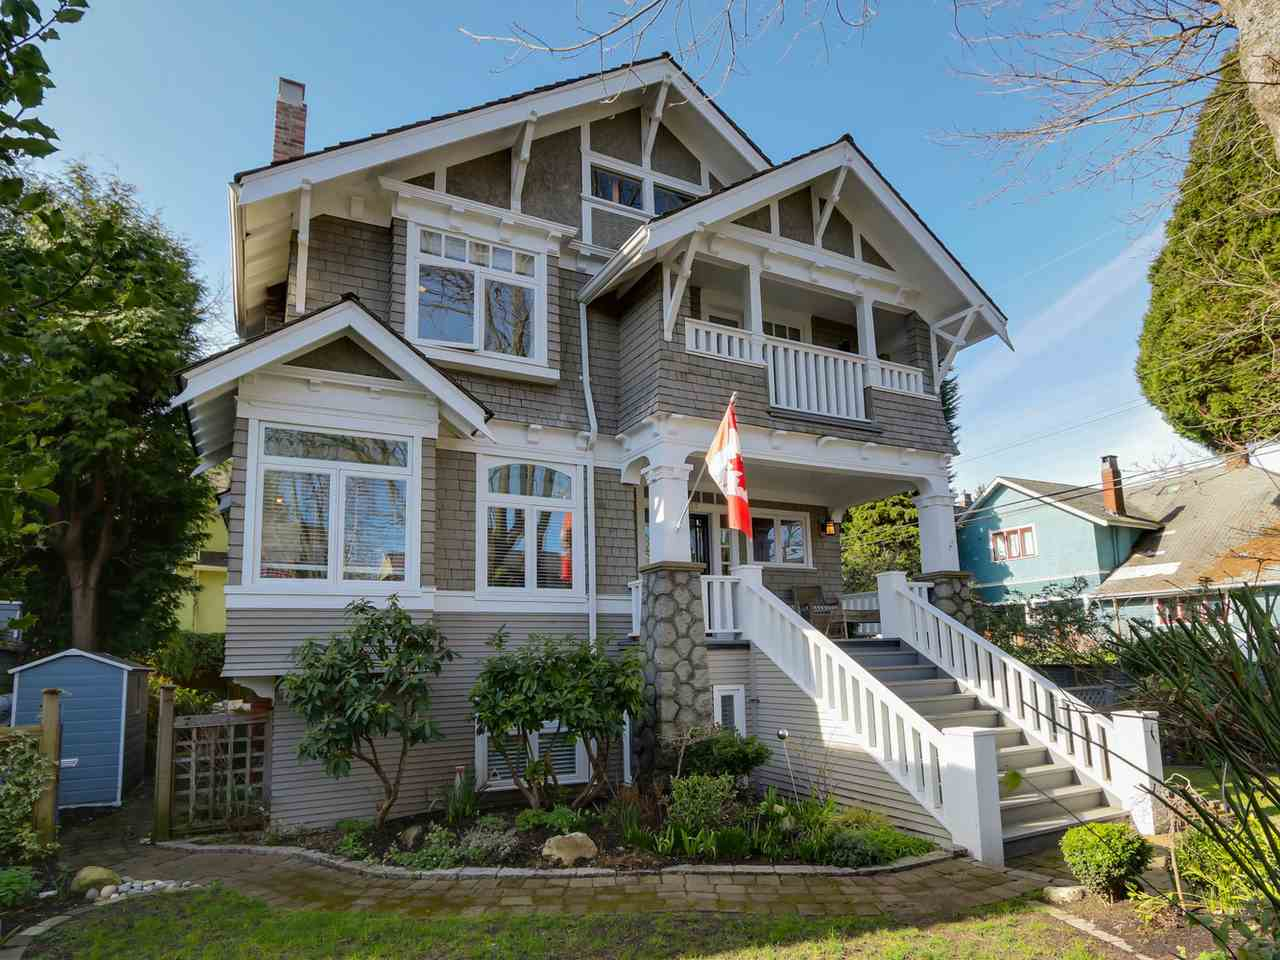 Main Photo: 1835 COLLINGWOOD STREET in Vancouver: Kitsilano House for sale (Vancouver West)  : MLS® # R2039694